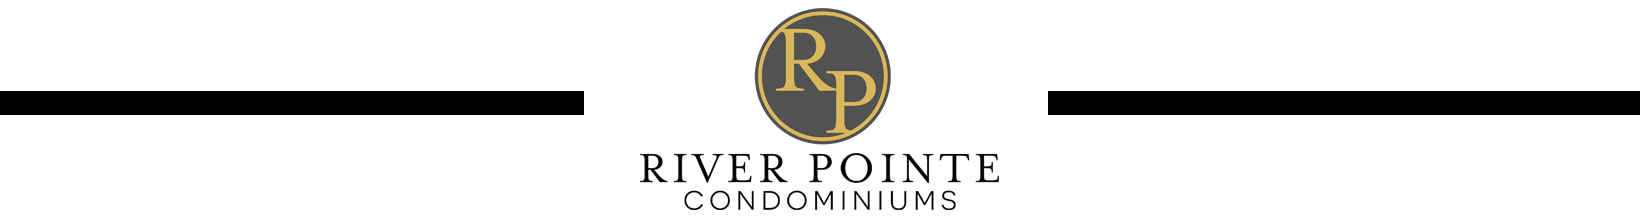 River Pointe Condominiums